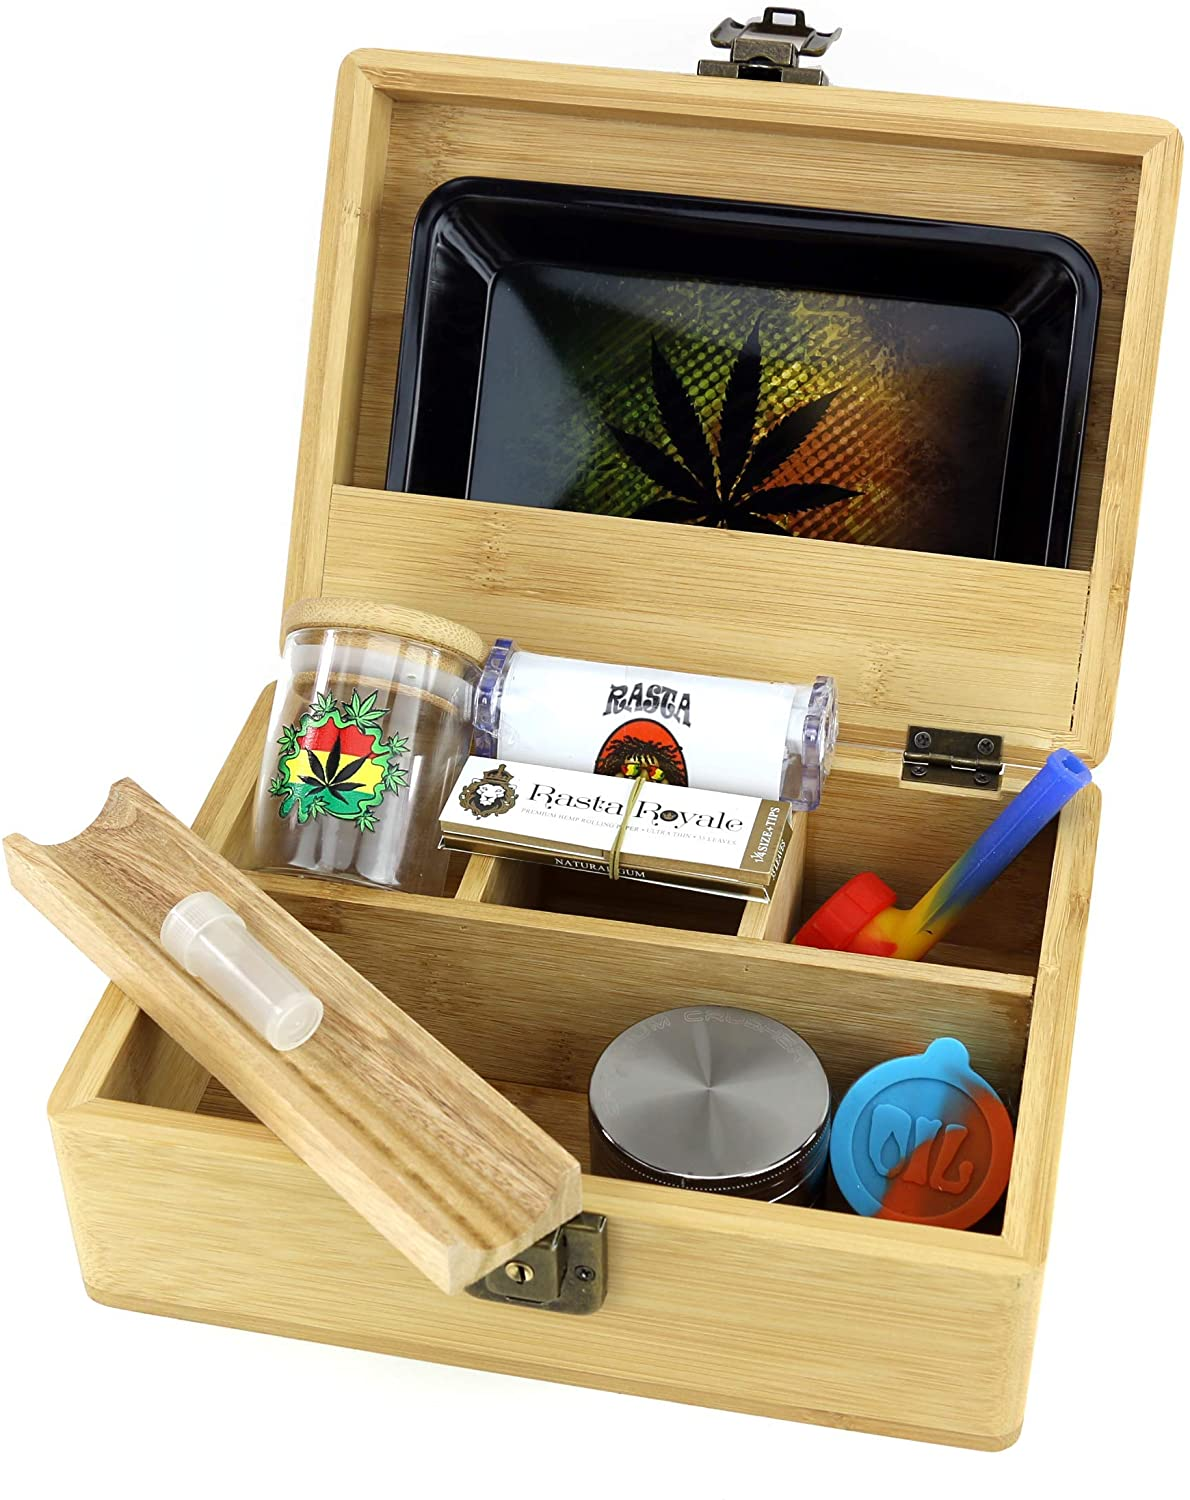 GStar NeverXhale Premium Bamboo Stash Box Combo Kit with Premium Accessories: Grinder, Rolling Paper, Cigarette Roller & More